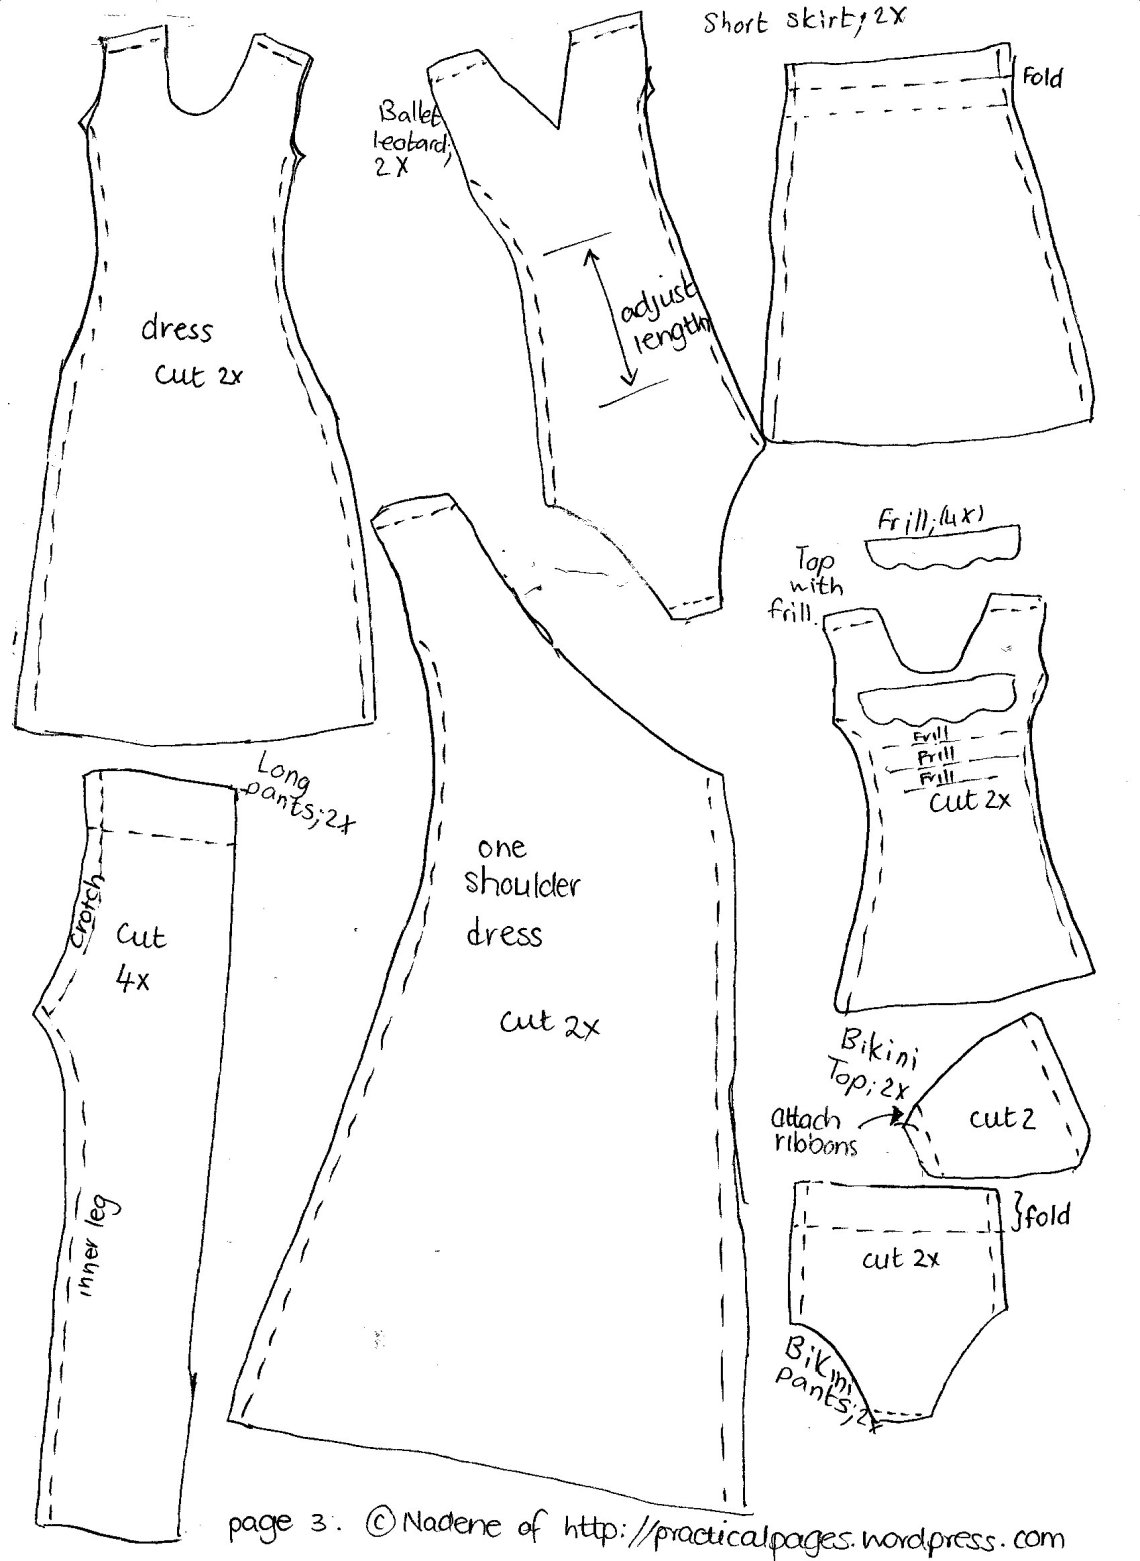 Image Result For How To Make A Vest Out Of Jeans Without Sewing